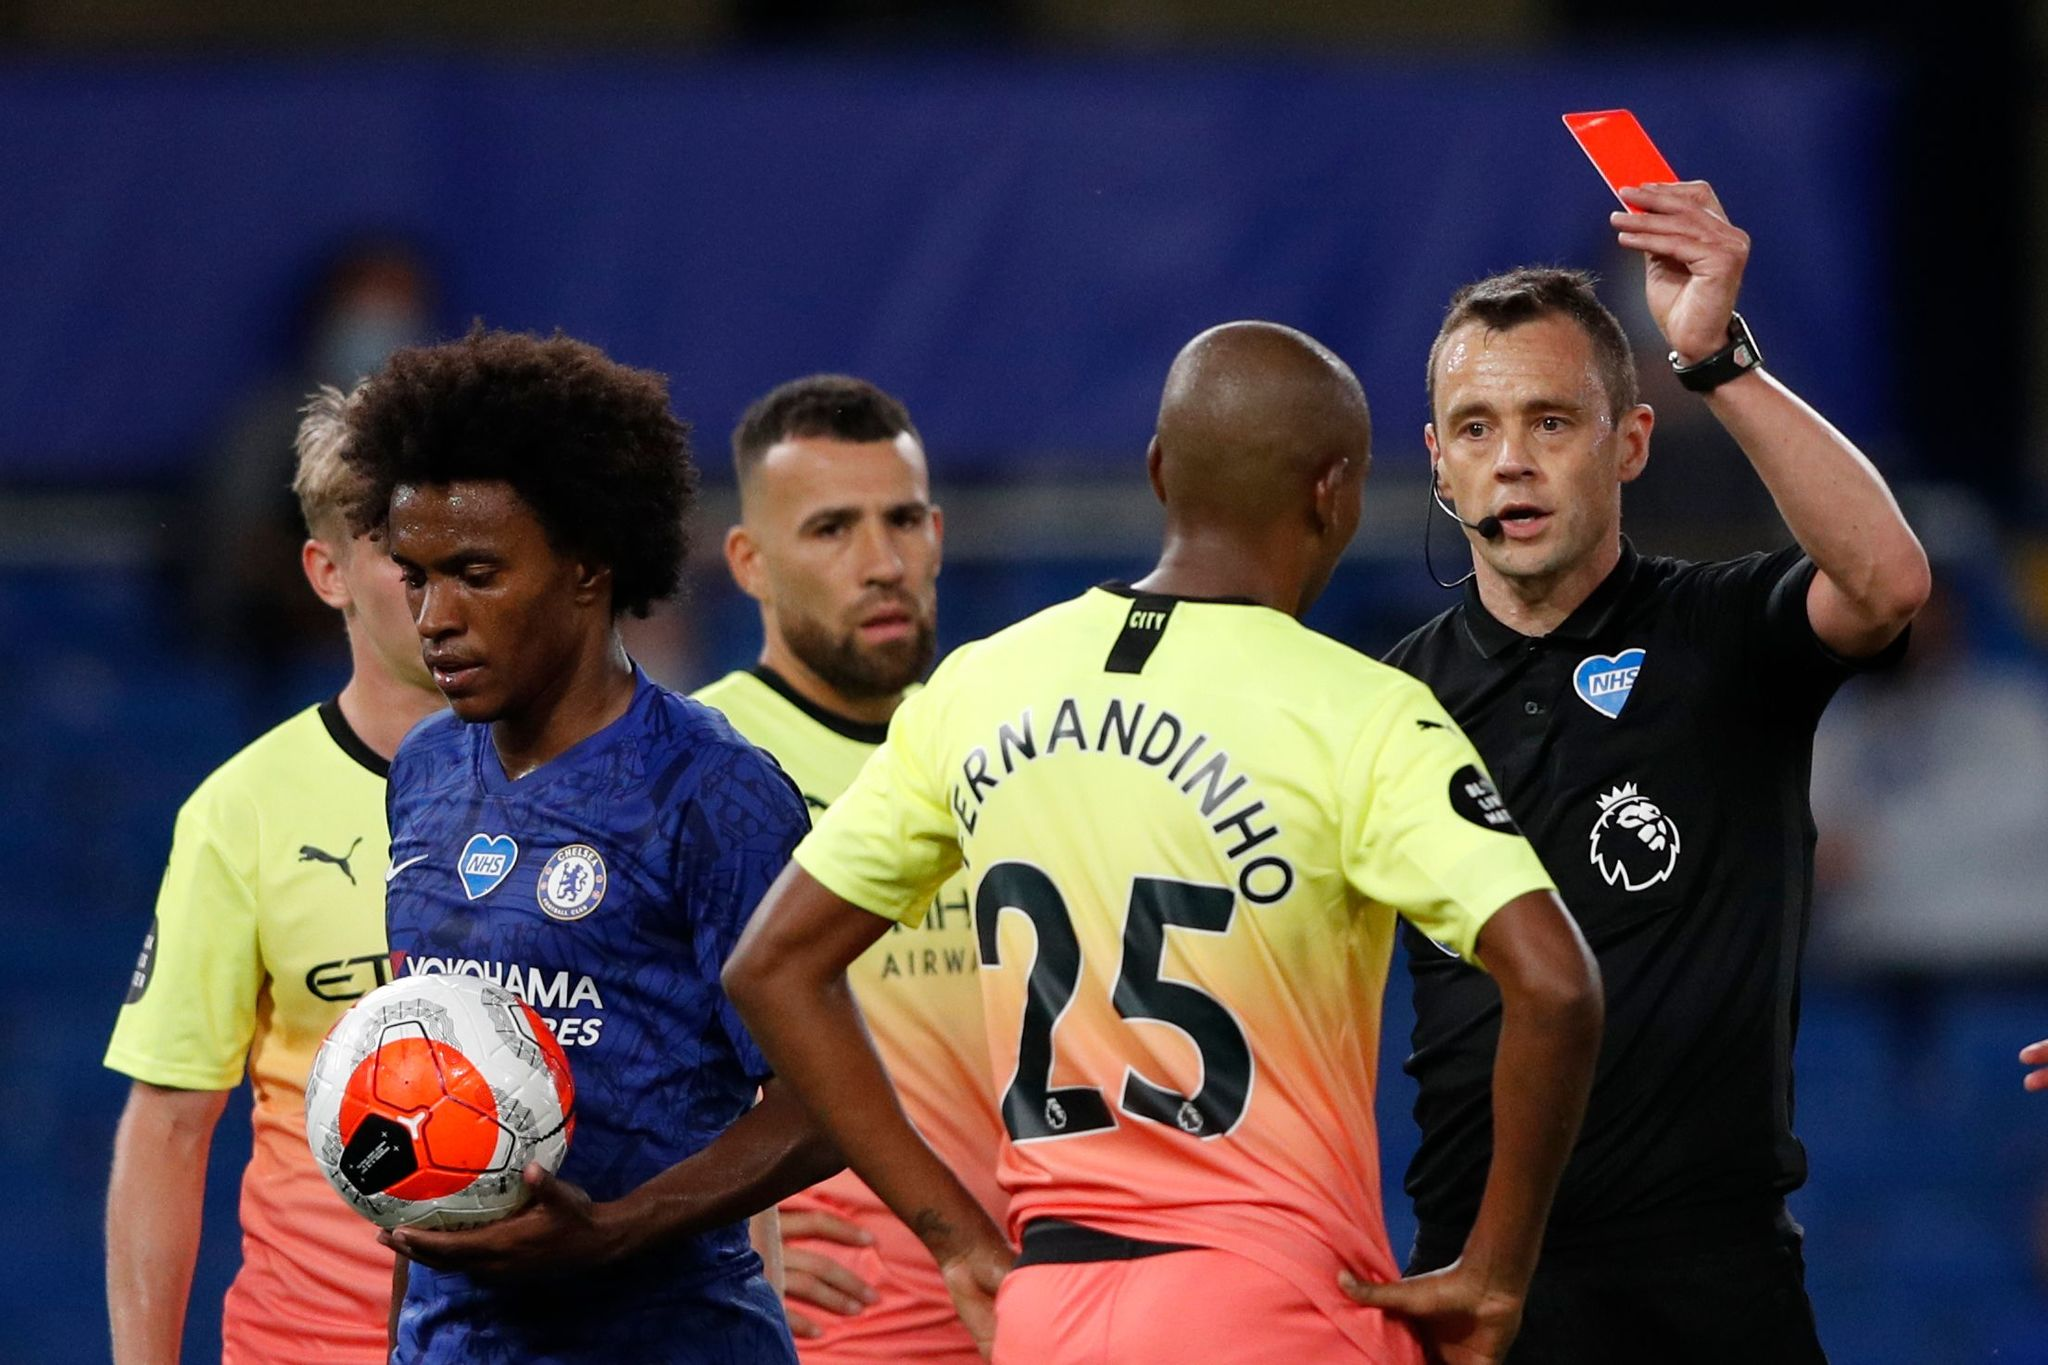 Manchester lt;HIT gt;City lt;/HIT gt;s Brazilian midfielder Fernandinho () is handed a red card during the English Premier League football match between Chelsea and Manchester lt;HIT gt;City lt;/HIT gt; at Stamford Bridge in London on June 25, 2020. (Photo by Adrian DENNIS / POOL / AFP) / RESTRICTED TO EDITORIAL USE. No use with unauthorized audio, video, data, fixture lists, club/league logos or live services. Online in-match use limited to 120 images. An additional 40 images may be used in extra time. No video emulation. Social media in-match use limited to 120 images. An additional 40 images may be used in extra time. No use in betting publications, games or single club/league/player publications. /